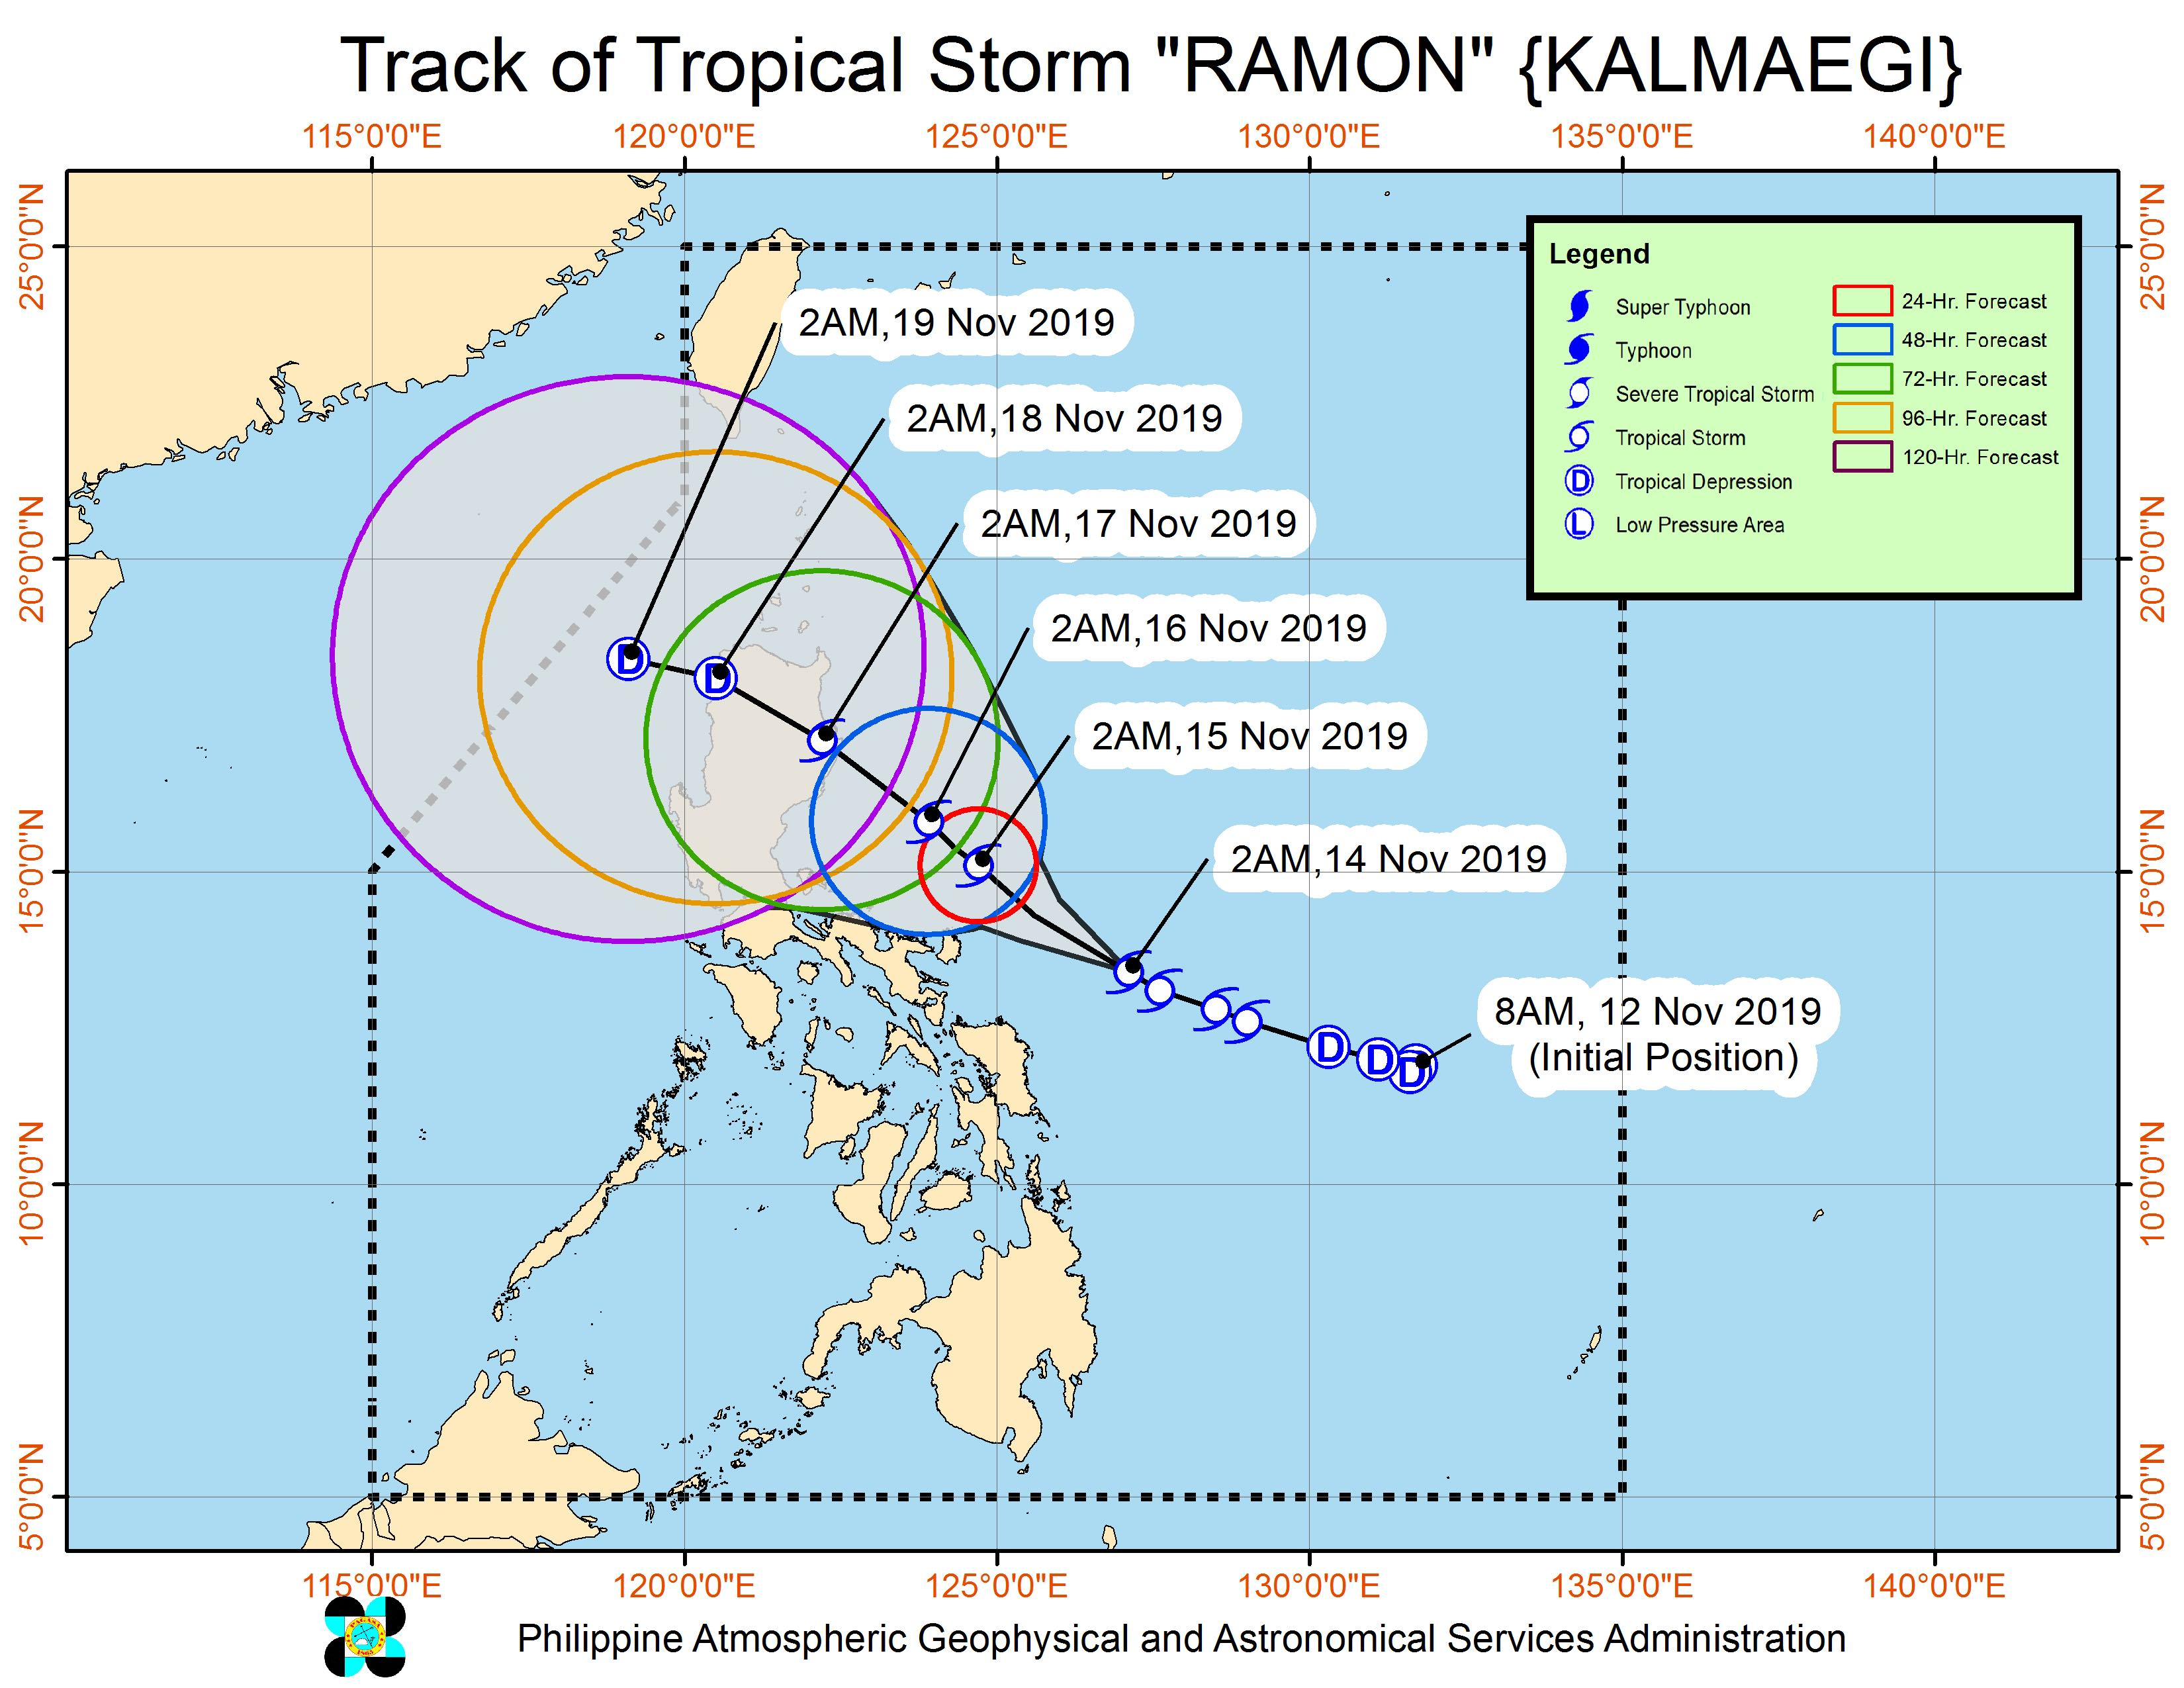 Forecast track of Tropical Storm Ramon (Kalmaegi) as of November 14, 2019, 5 am. Image from PAGASA